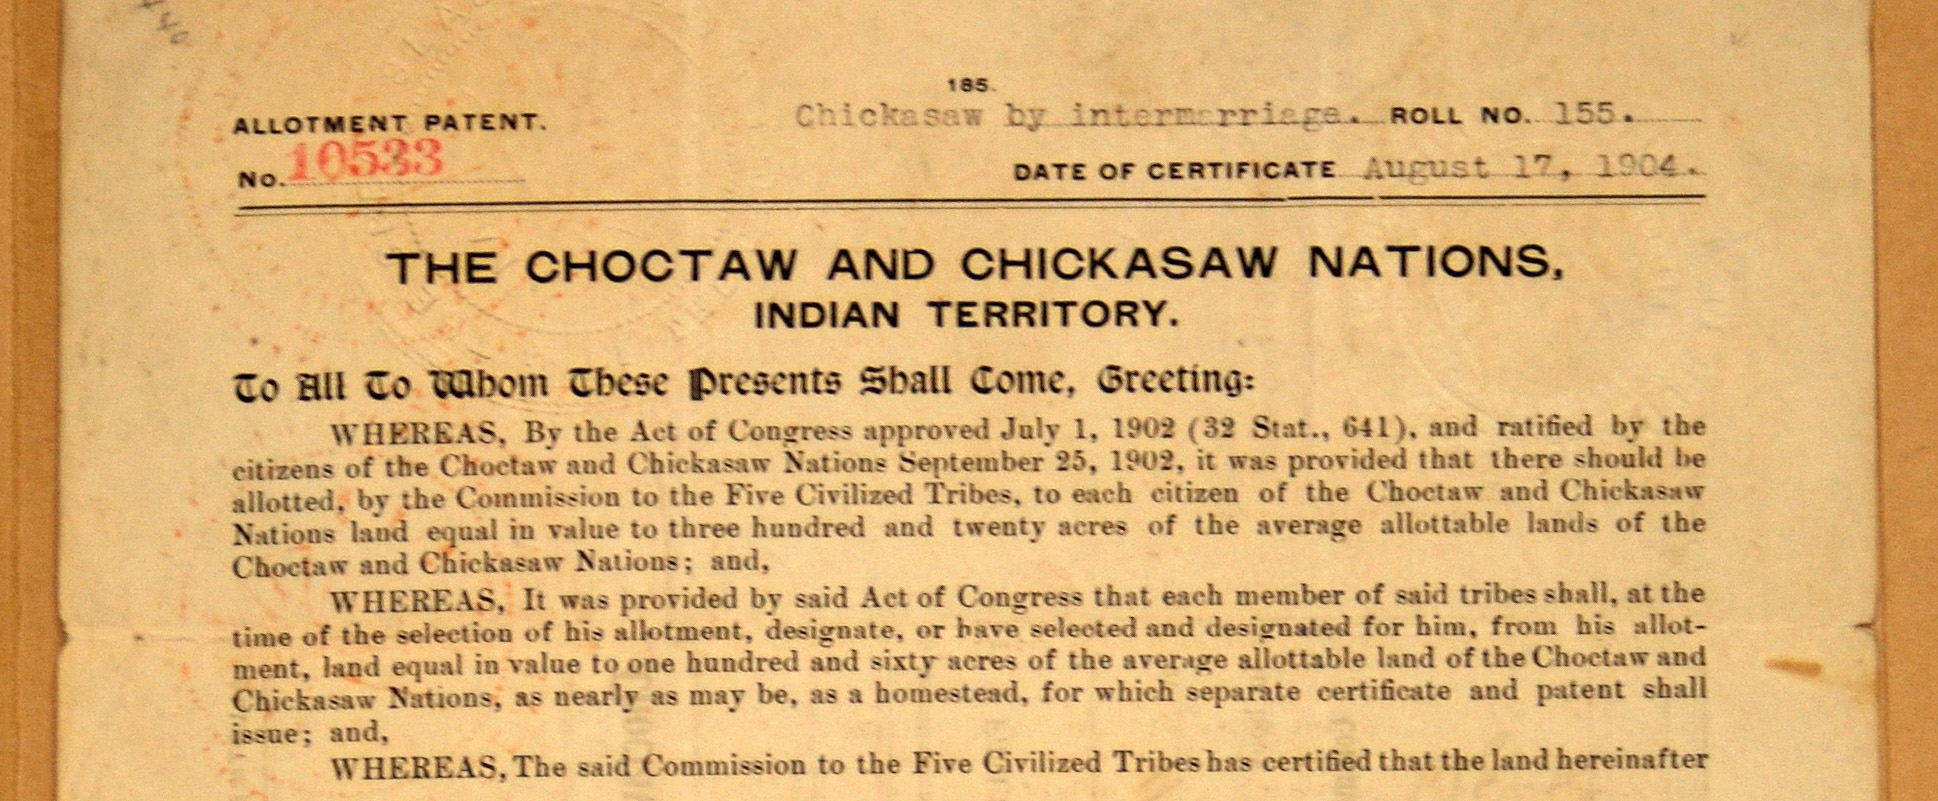 279786195574211833 also 7772540 Cheyenne Indian Tools And Weapons additionally Native American History in addition Trail of Tears further Trail Of Tears Map. on removal of the american indians pictures map